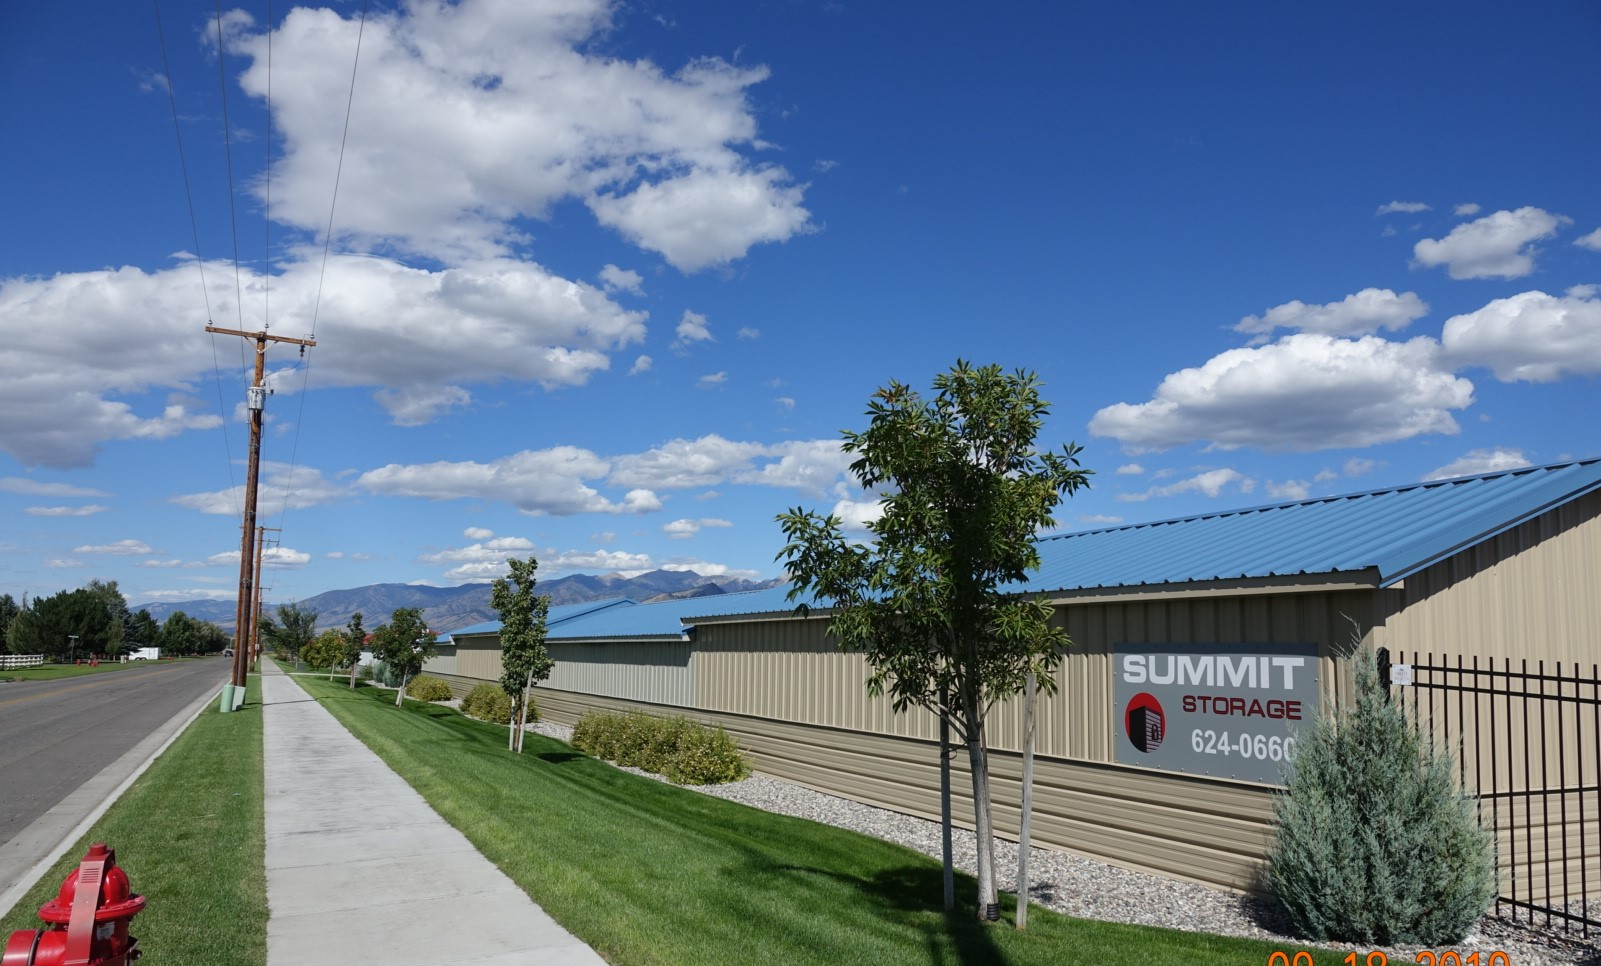 Summit Storage in Bozeman, UT